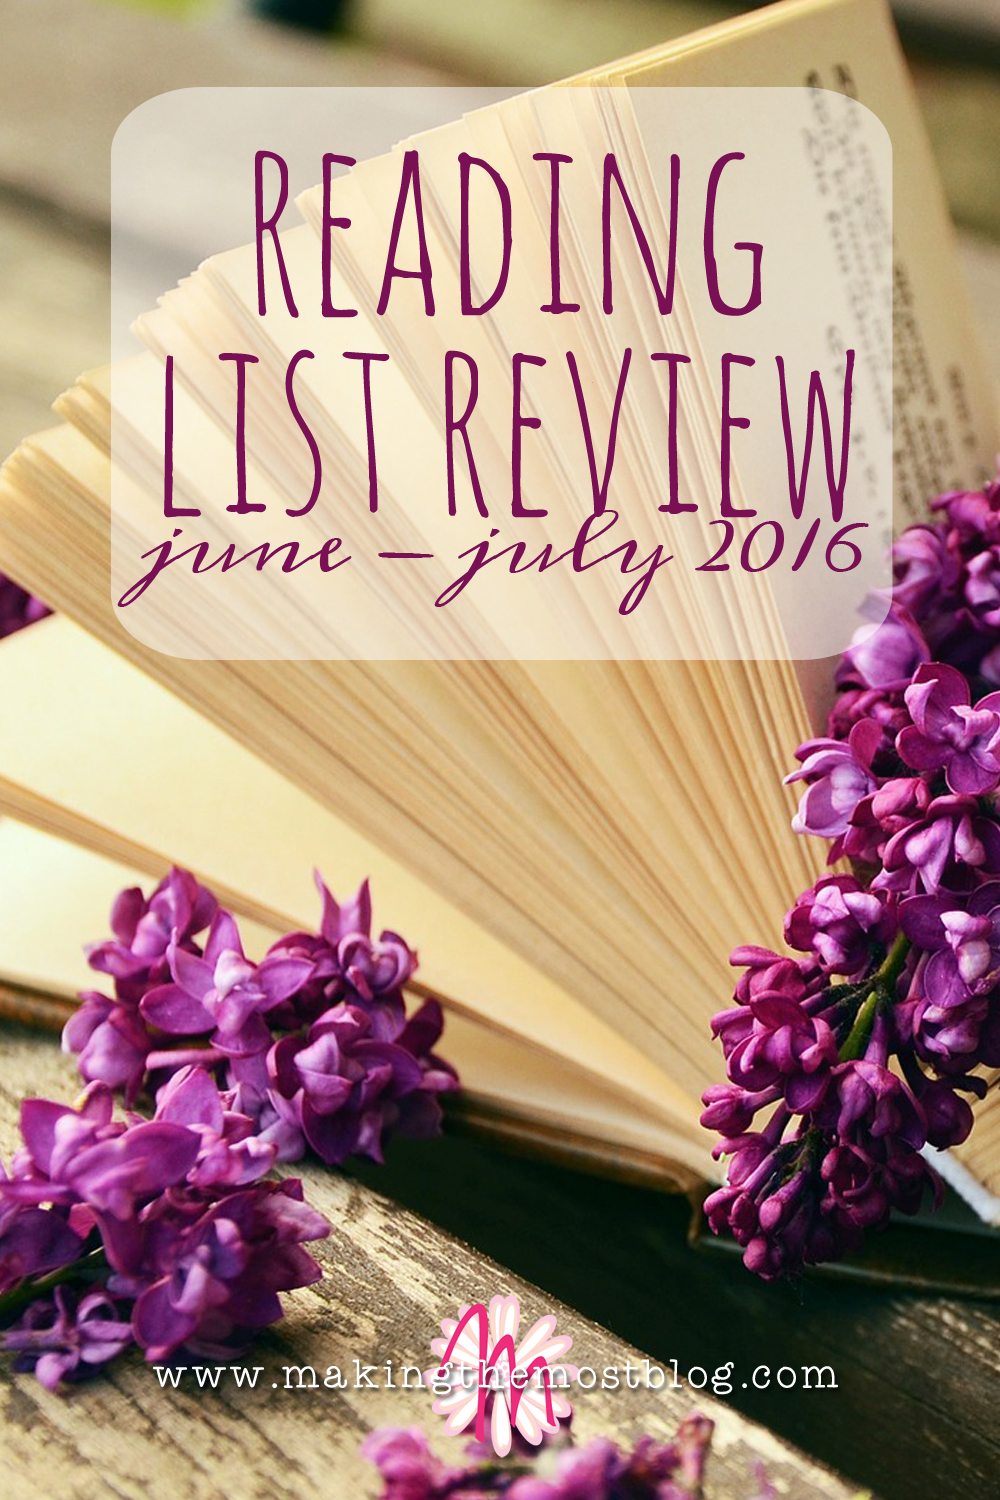 Reading List Review: June-July 2016